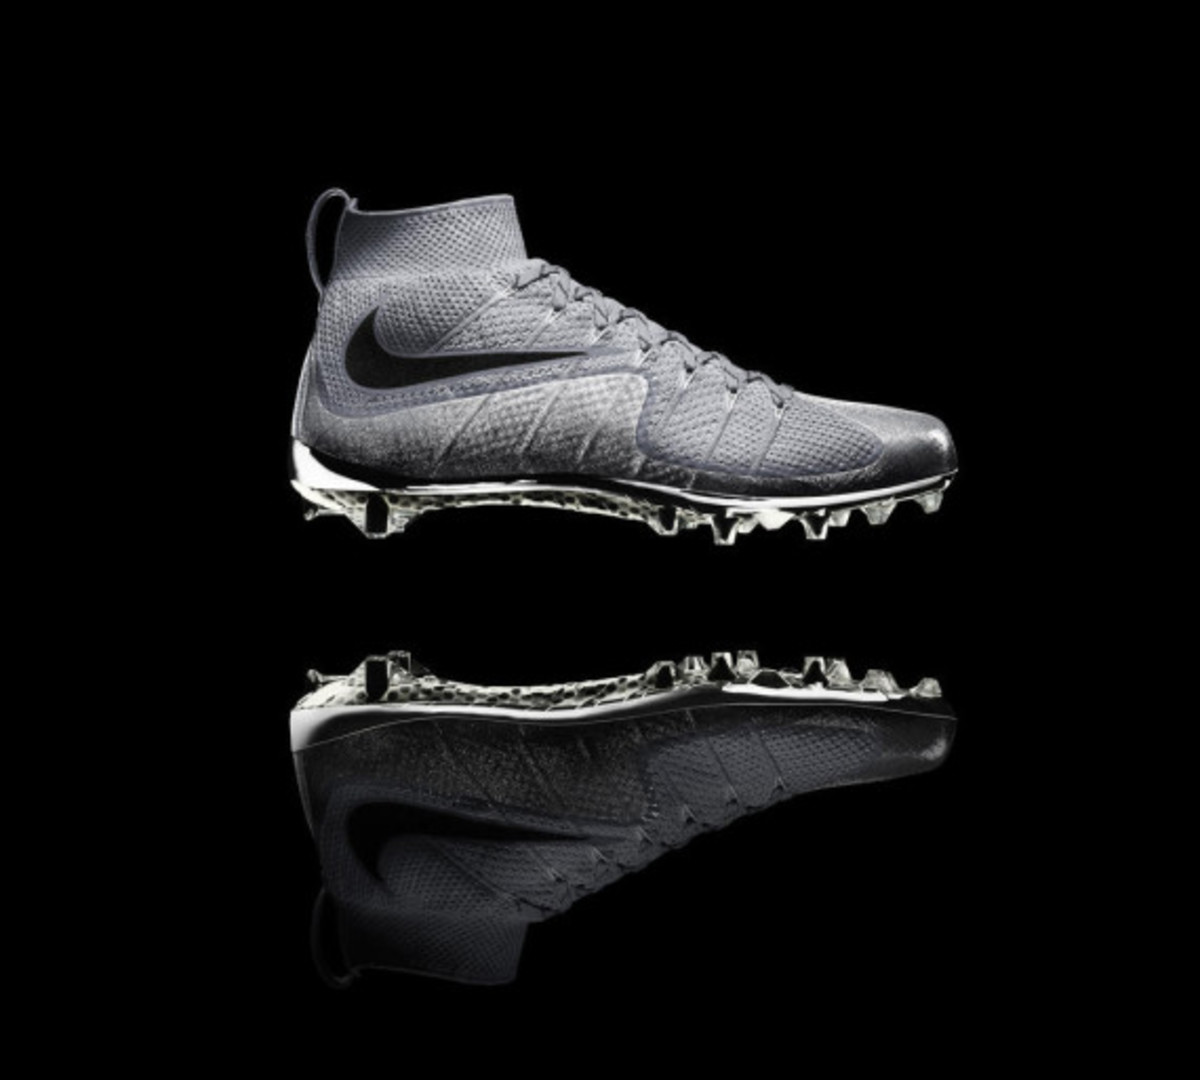 nike-vapor-untouchable-cleat-02